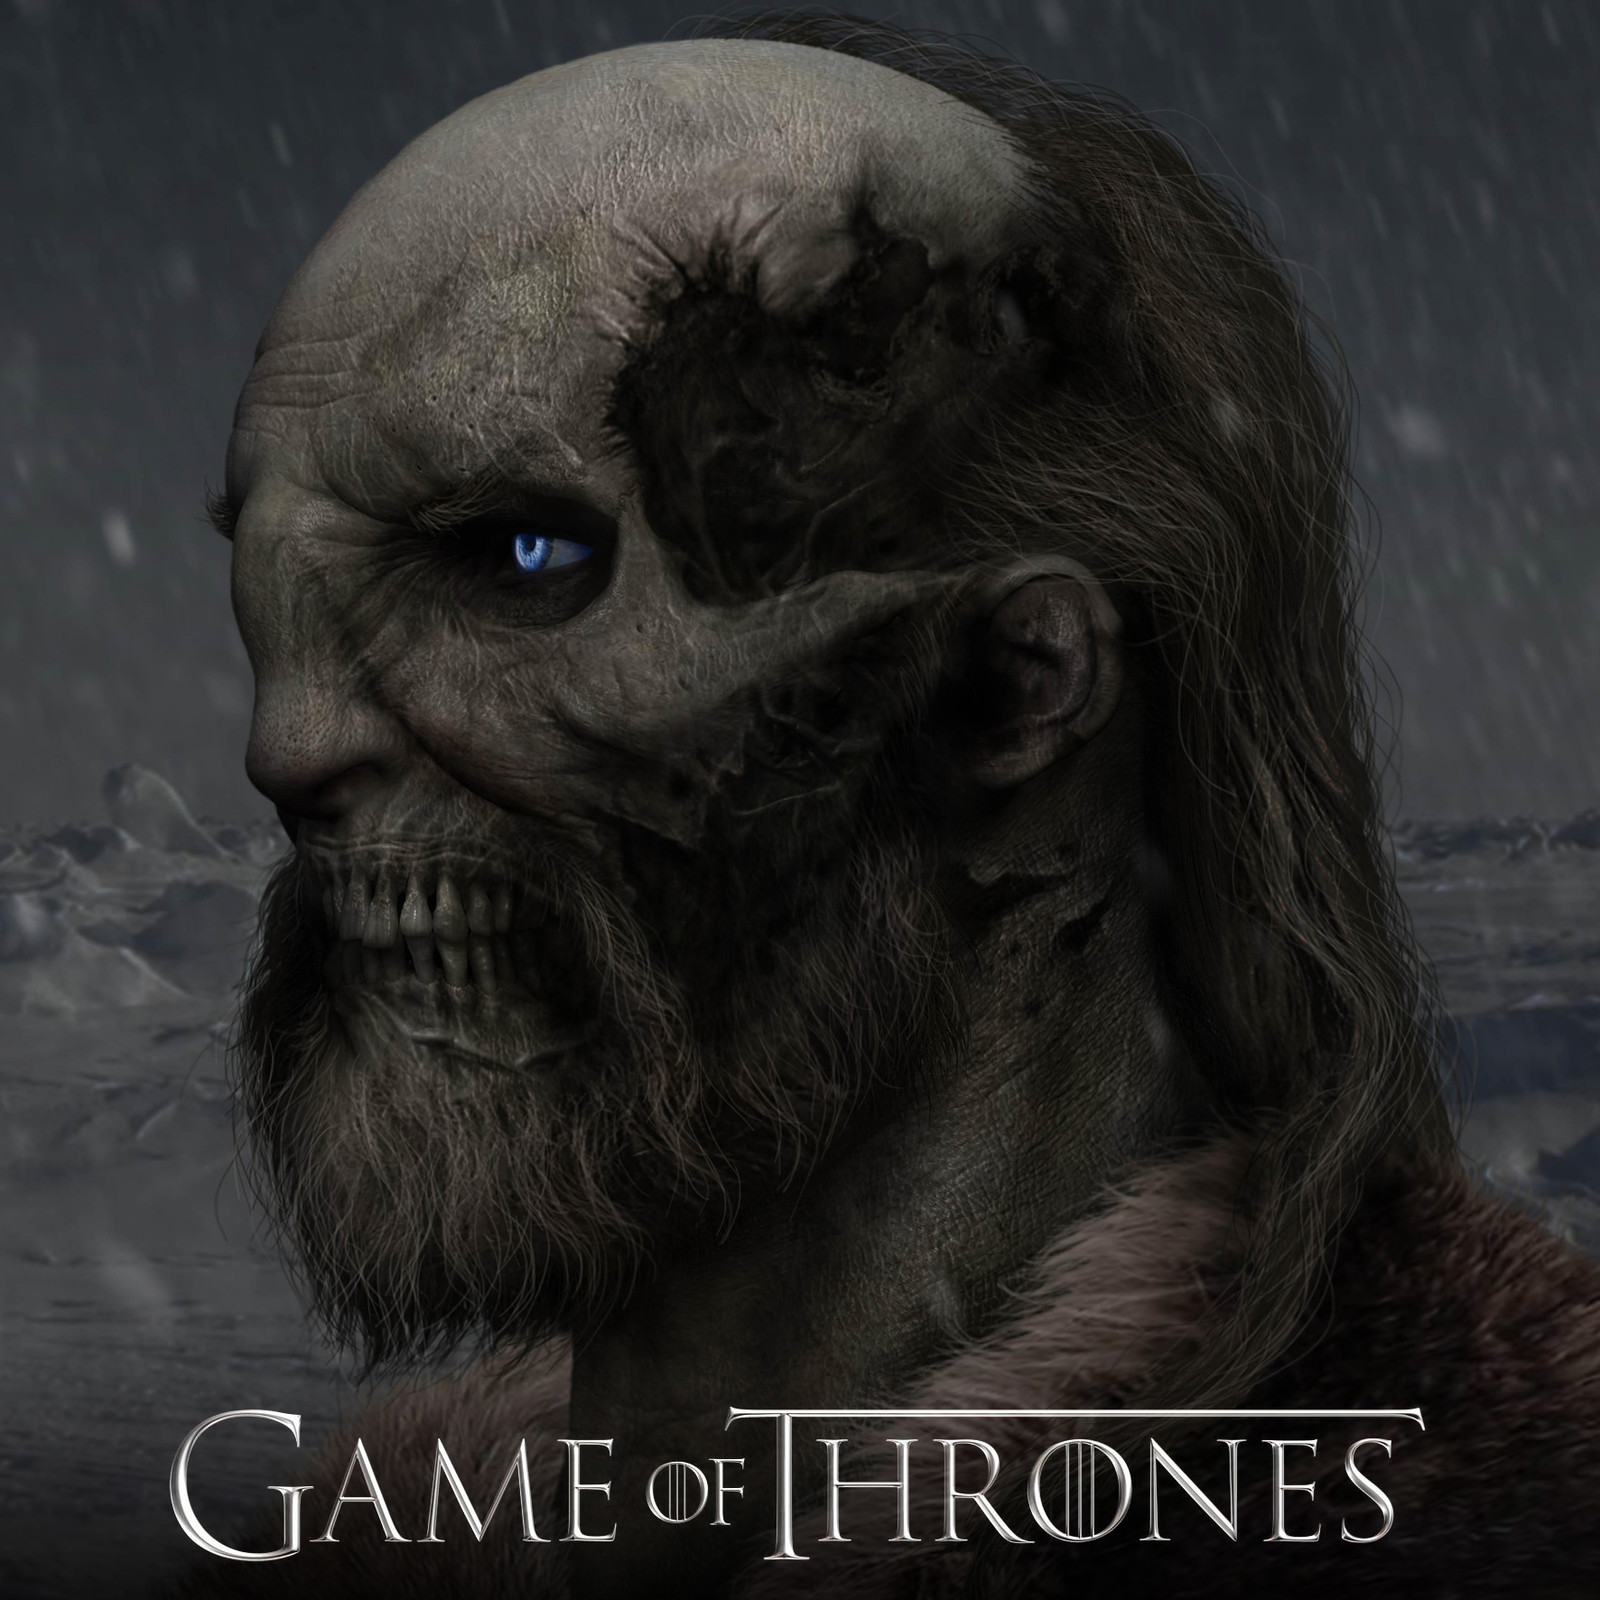 Game of Thrones - Season 7 - Giant Wights